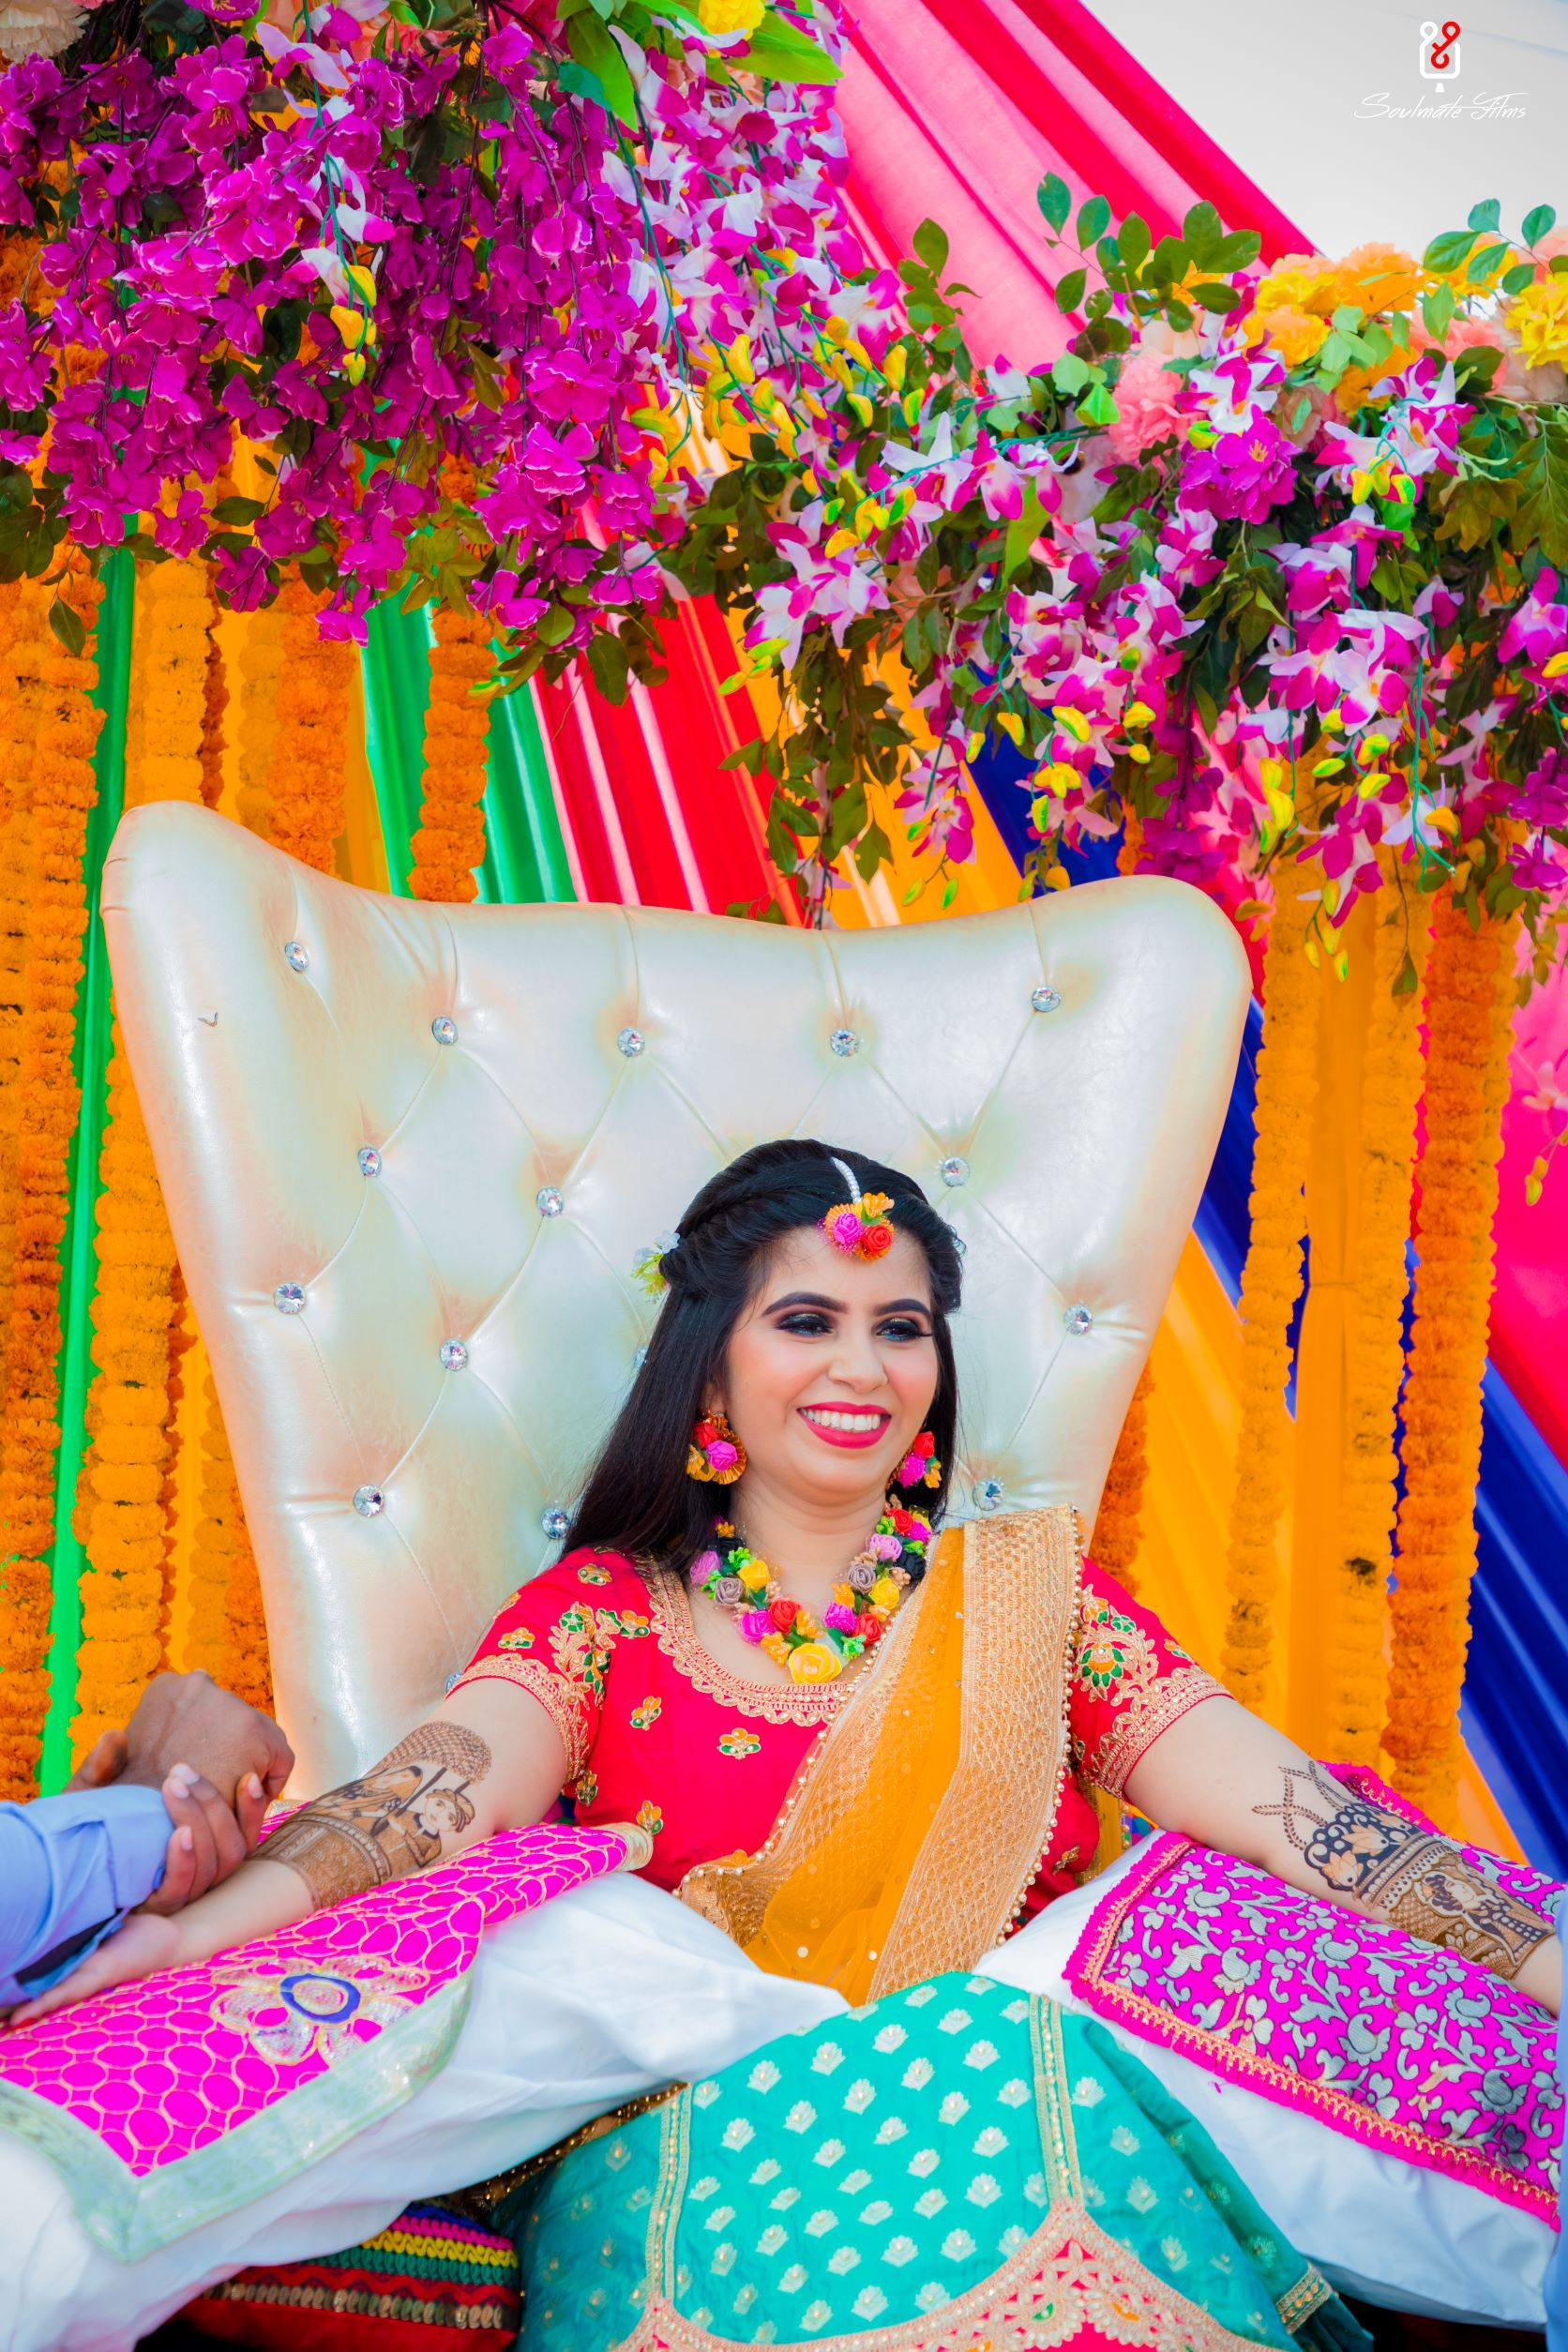 candid shot of the happy bride at her mehendi